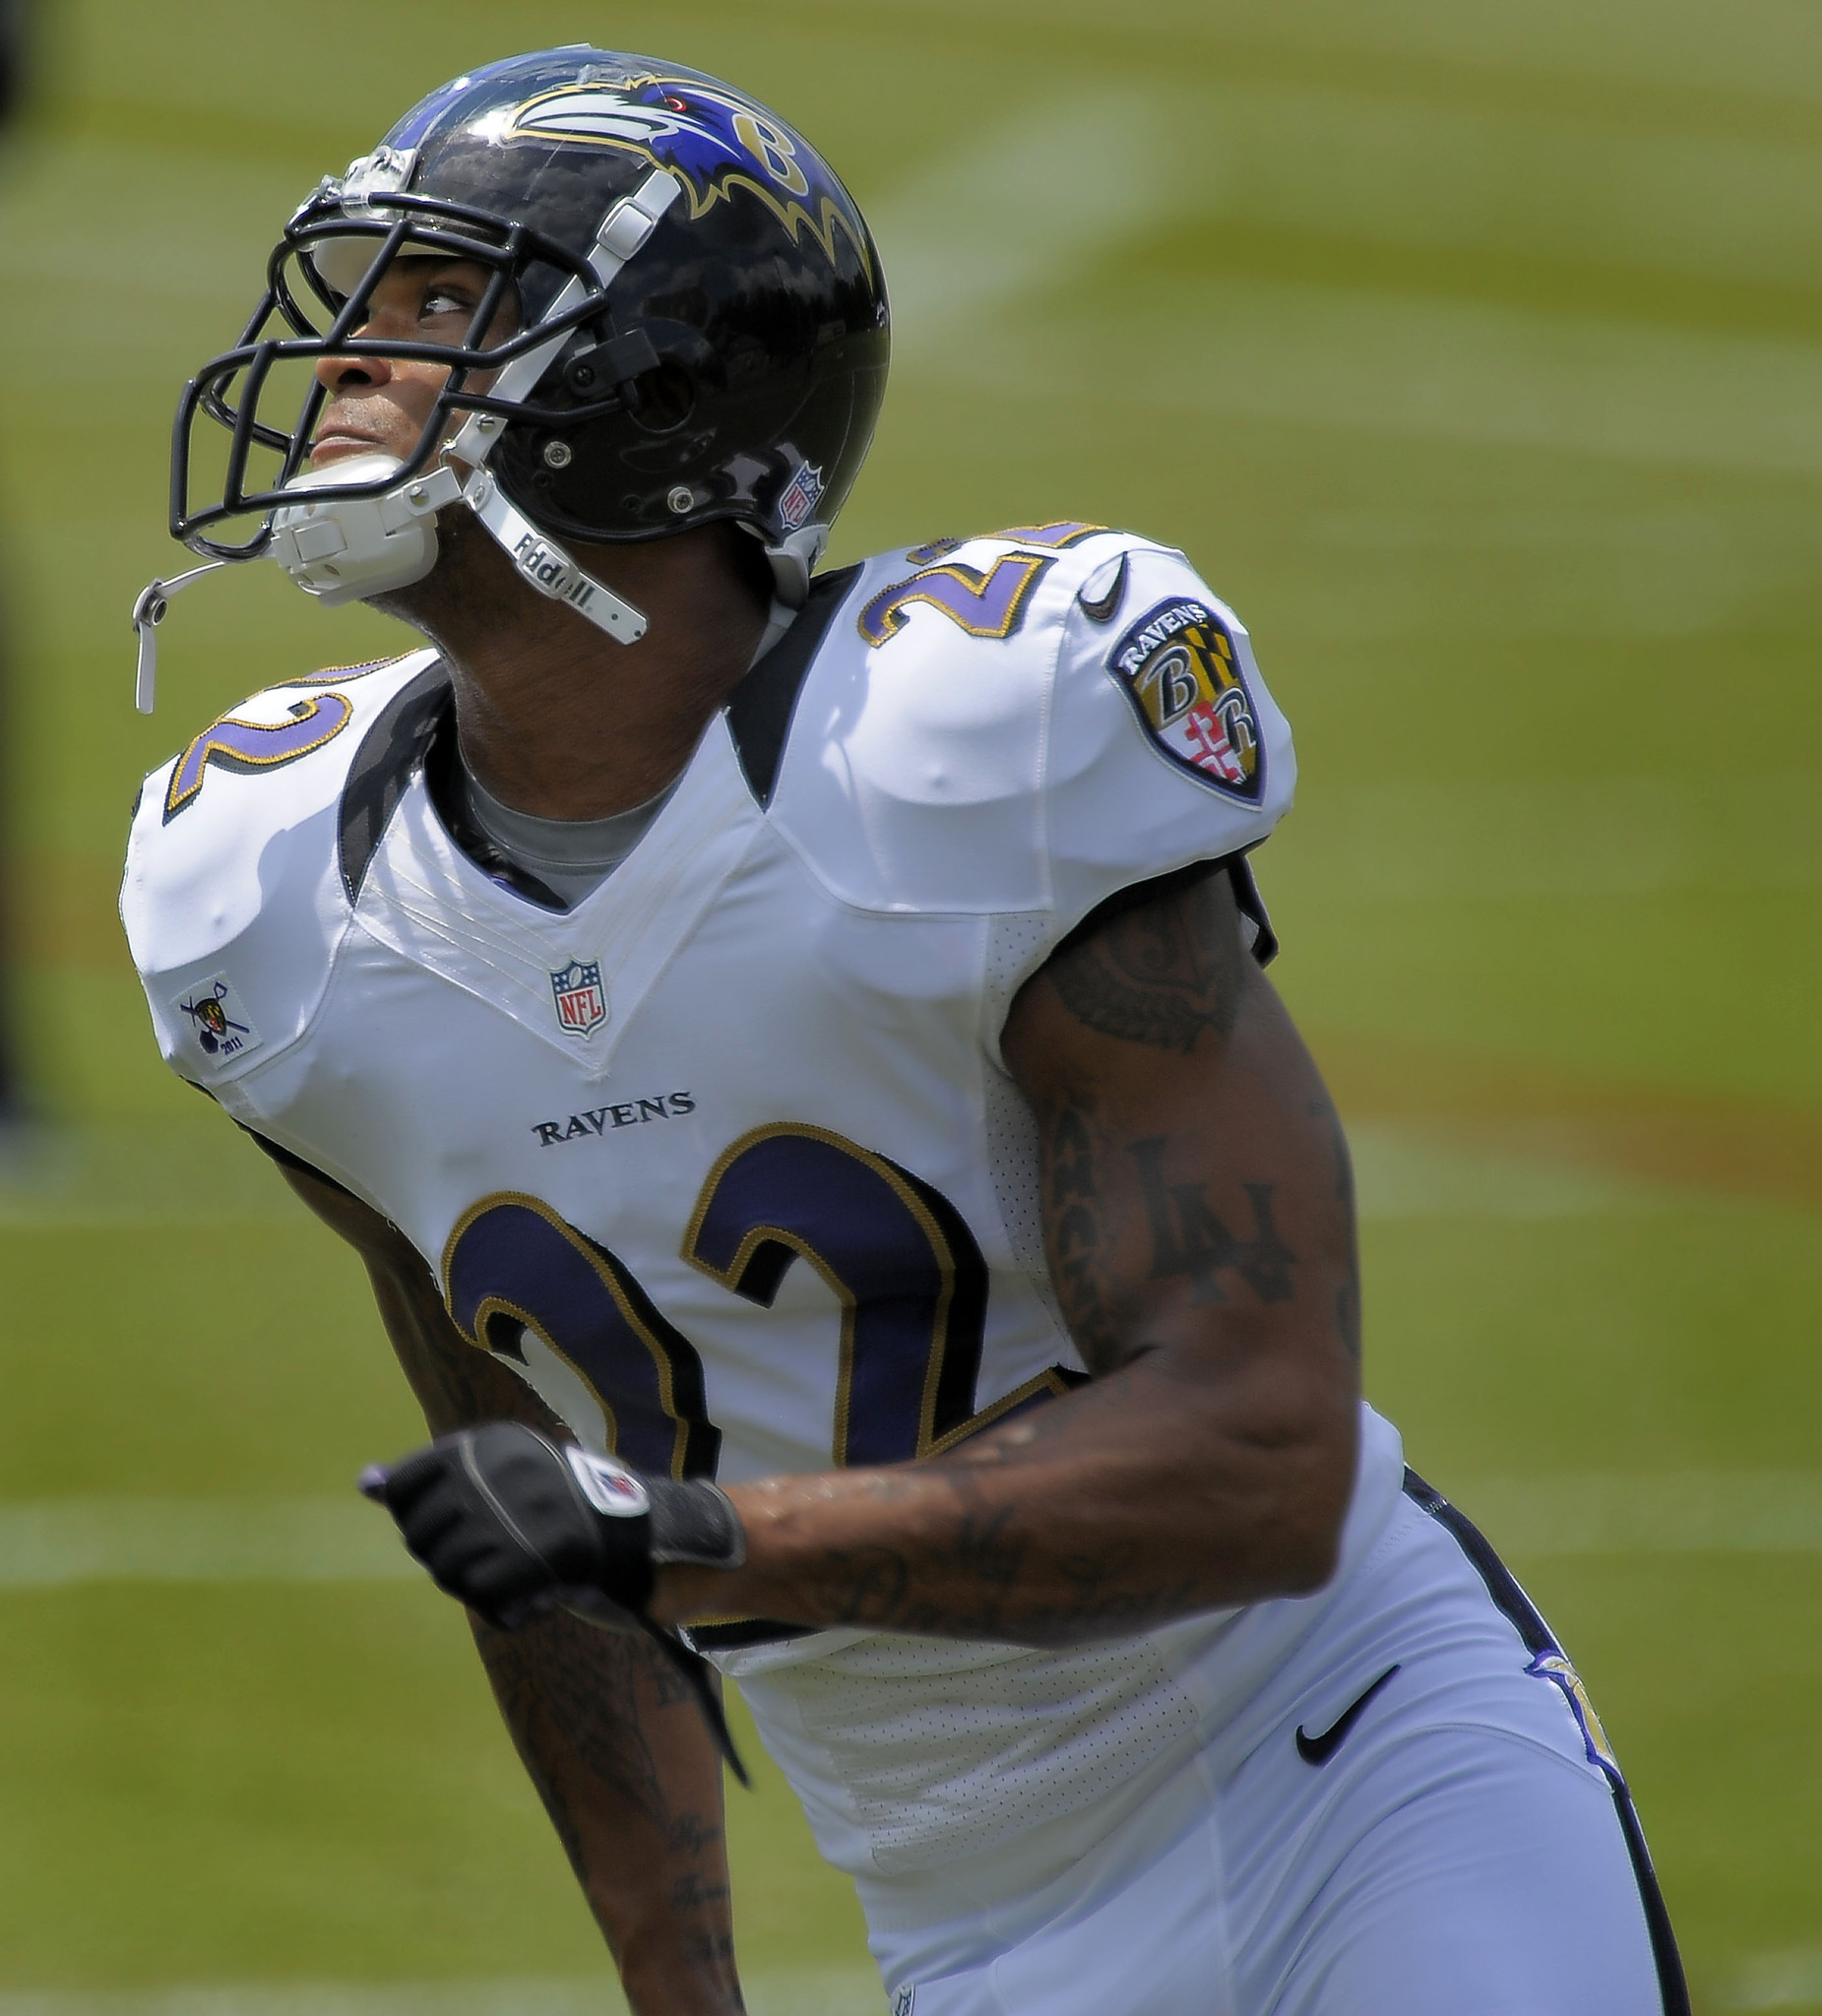 Ravens cornerback Jimmy Smith is one of the younger players expected to contribute this season.